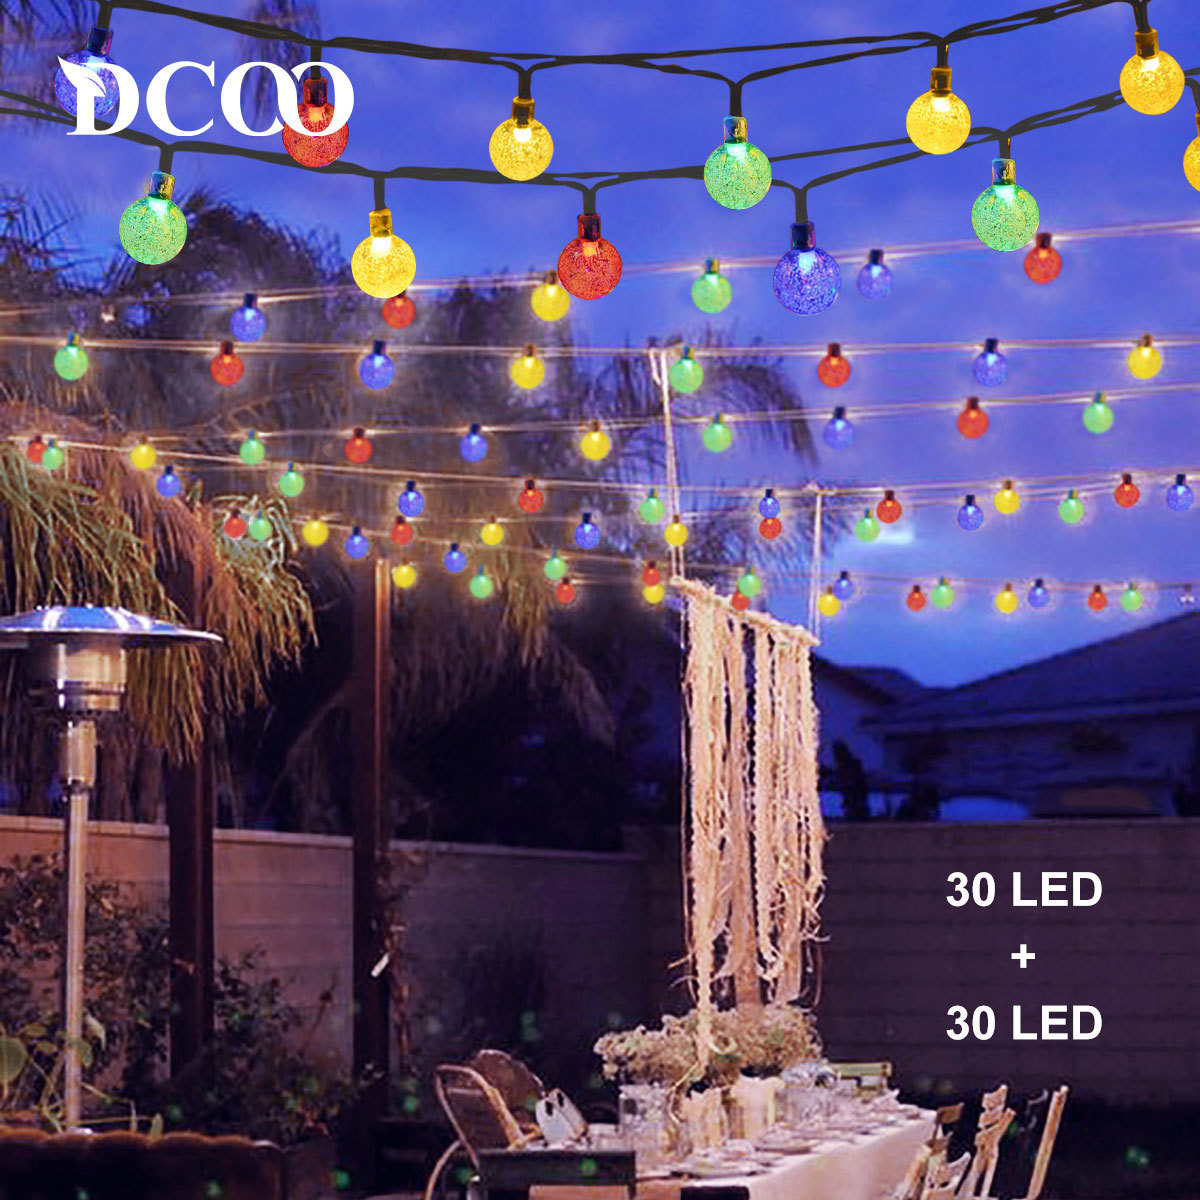 Dcoo 2 pices solaire aliment globe led chane lumires 30 led dcoo 2 pieces solar powered string lights 30 leds lights outdoor globe ball sloar string party aloadofball Choice Image